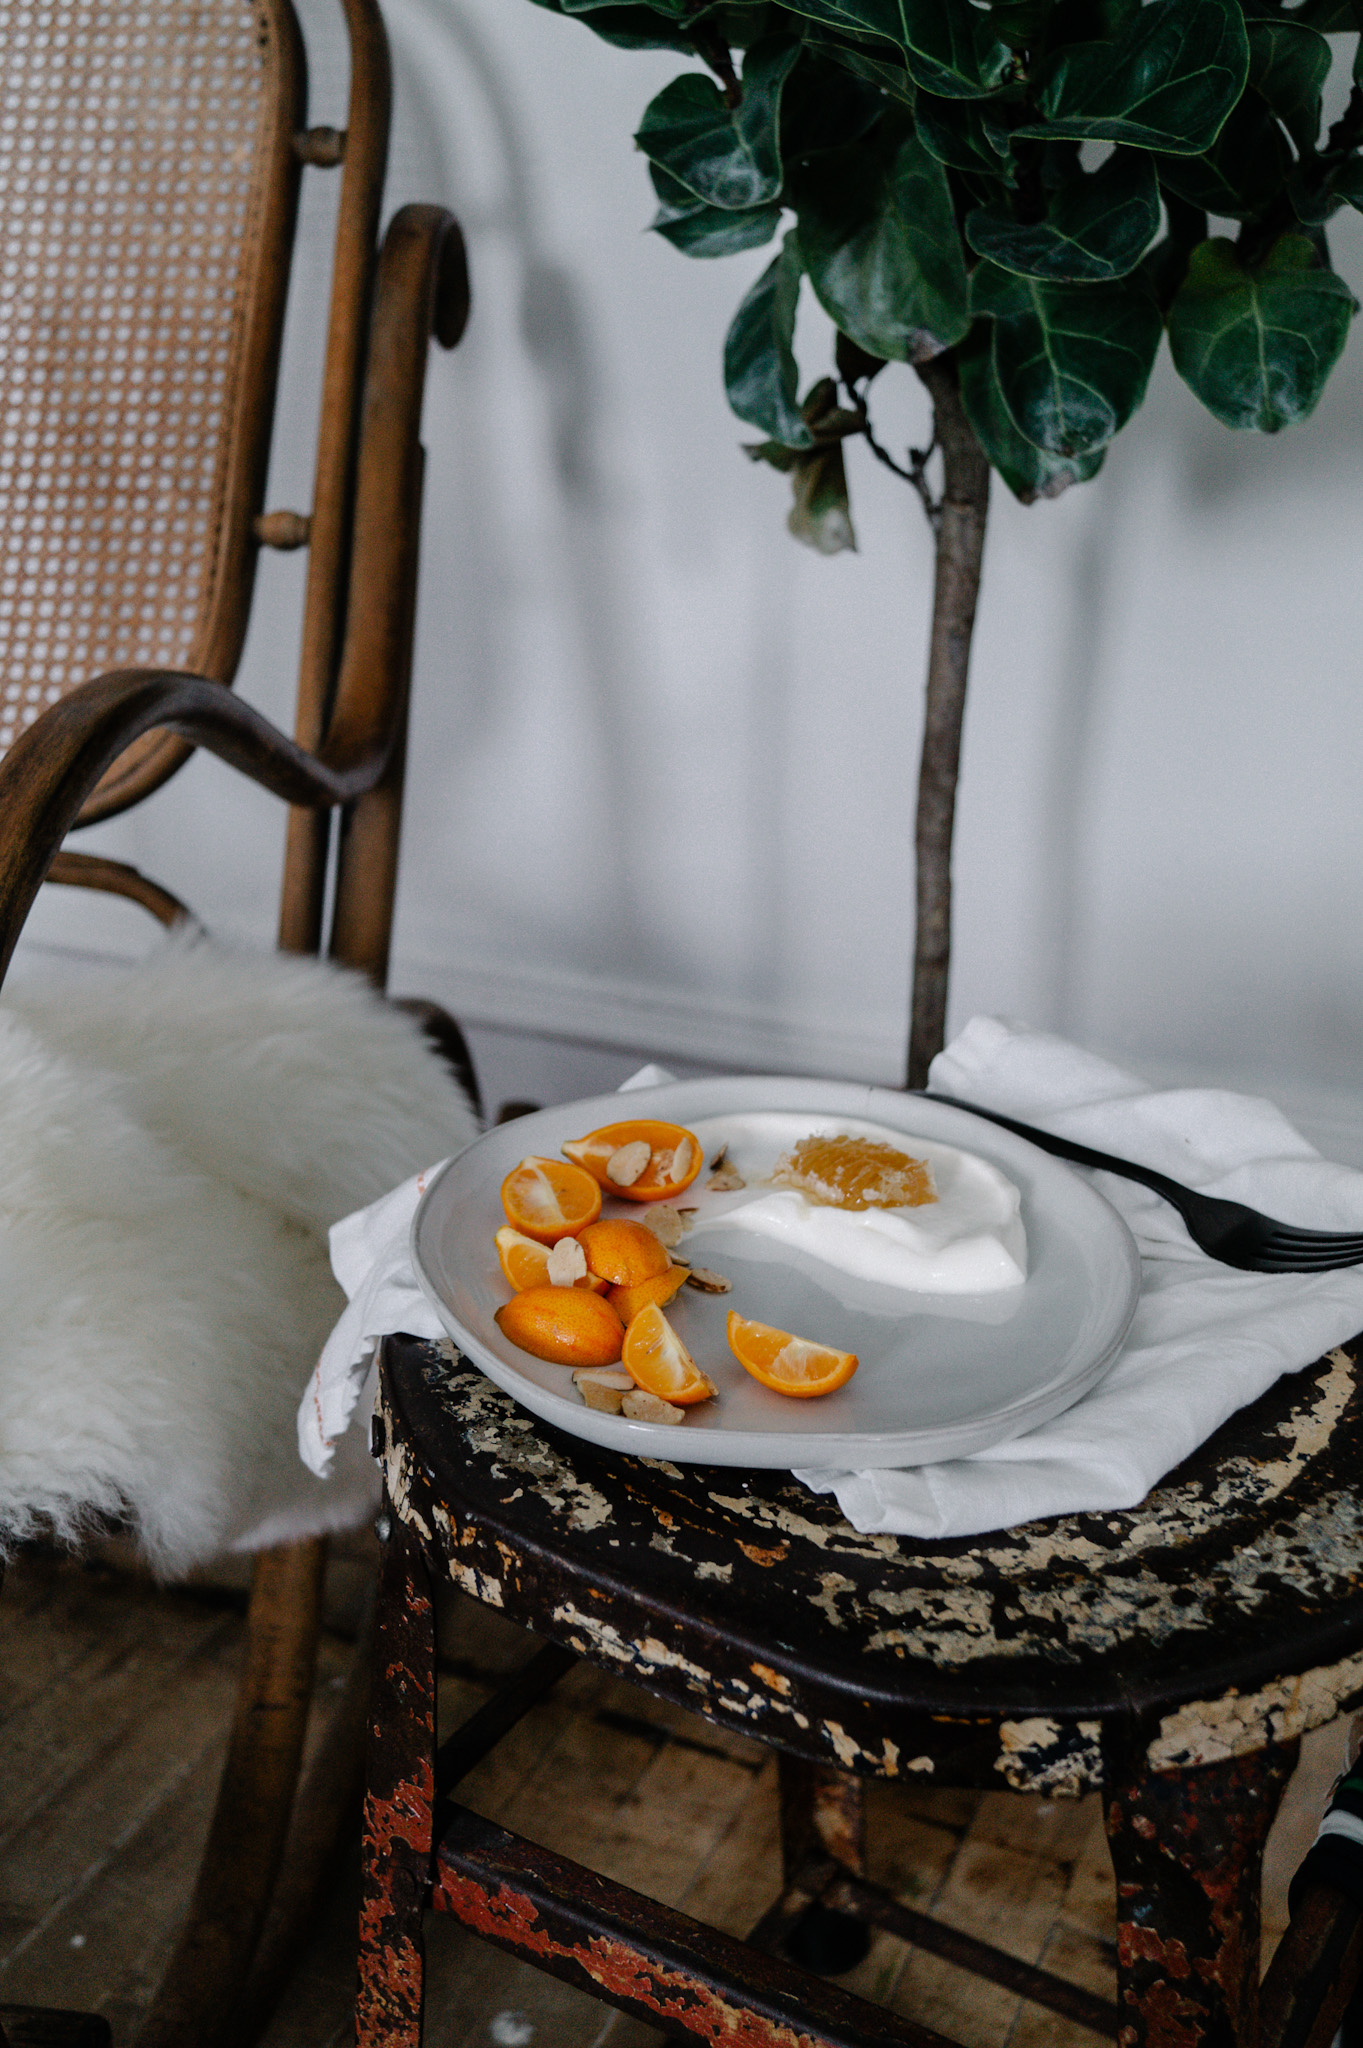 Citrus yogurt bowl with kumquats and almonds.